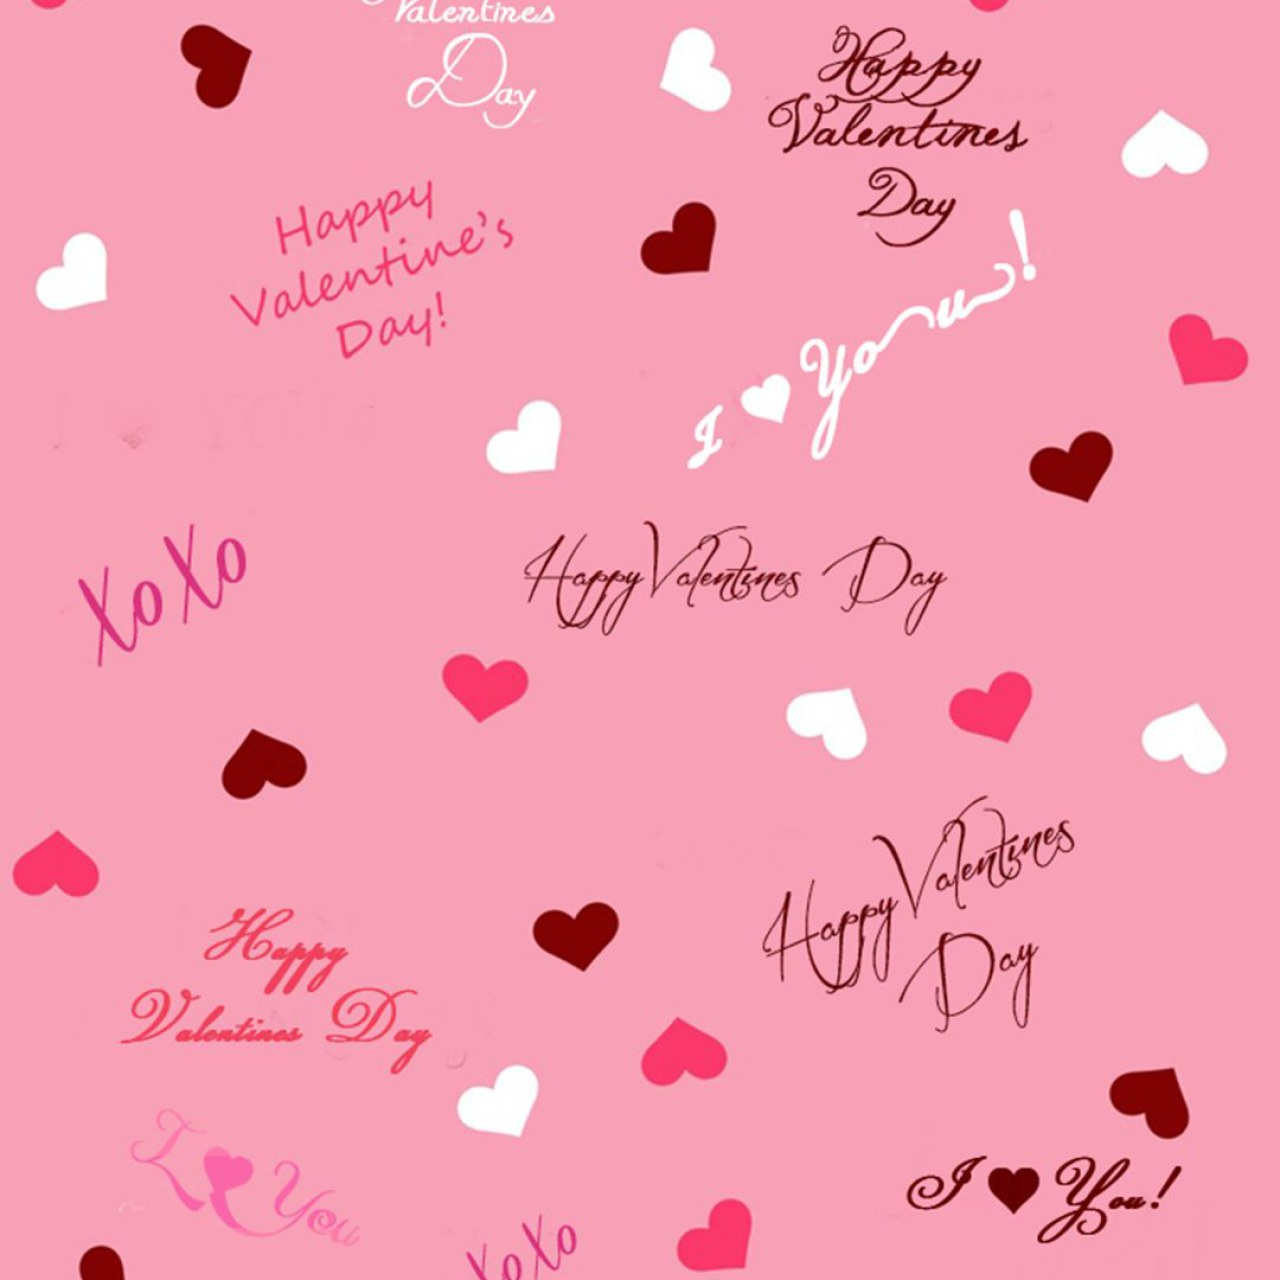 happy valentine day hd wallpapers 1080p 2